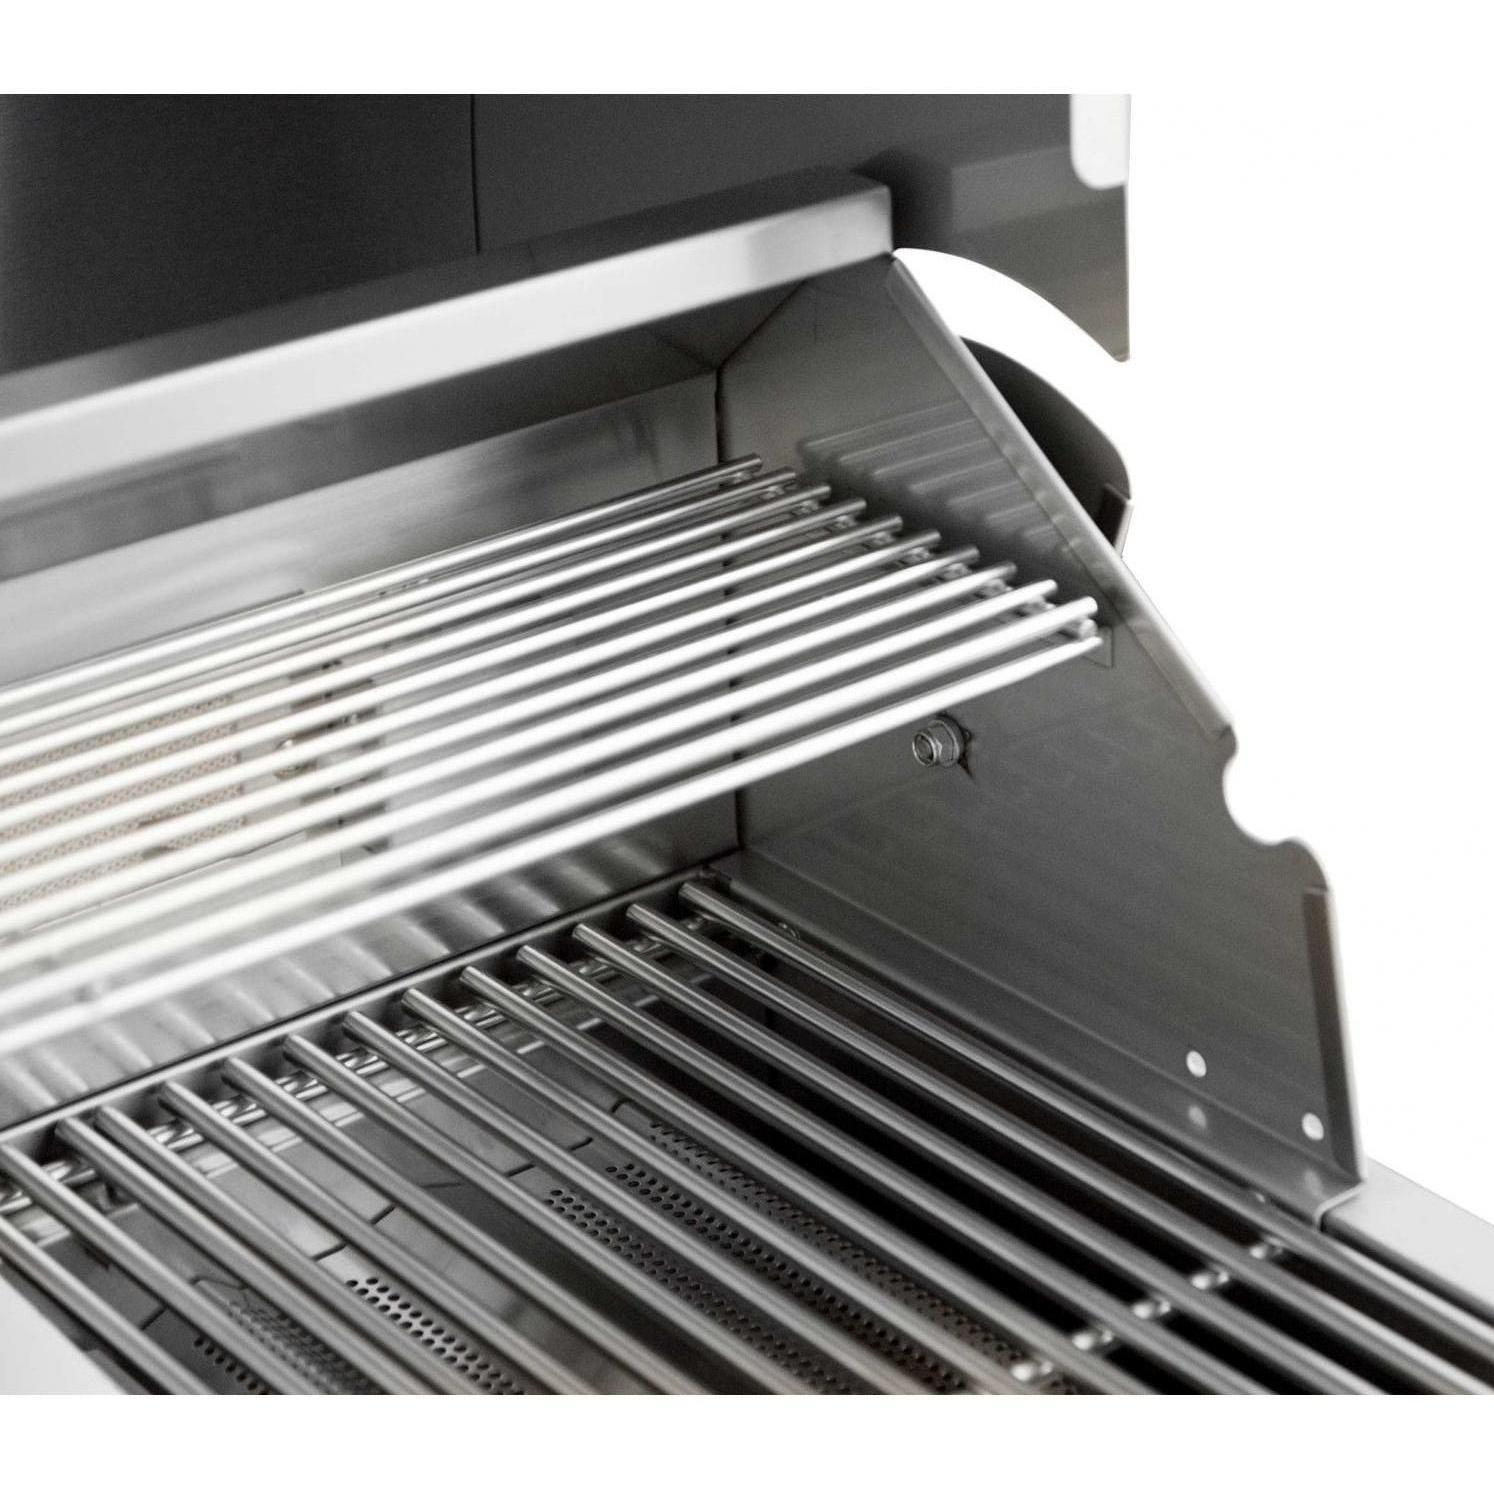 blaze 40inch 5burner builtin natural gas grill - Natural Gas Grill